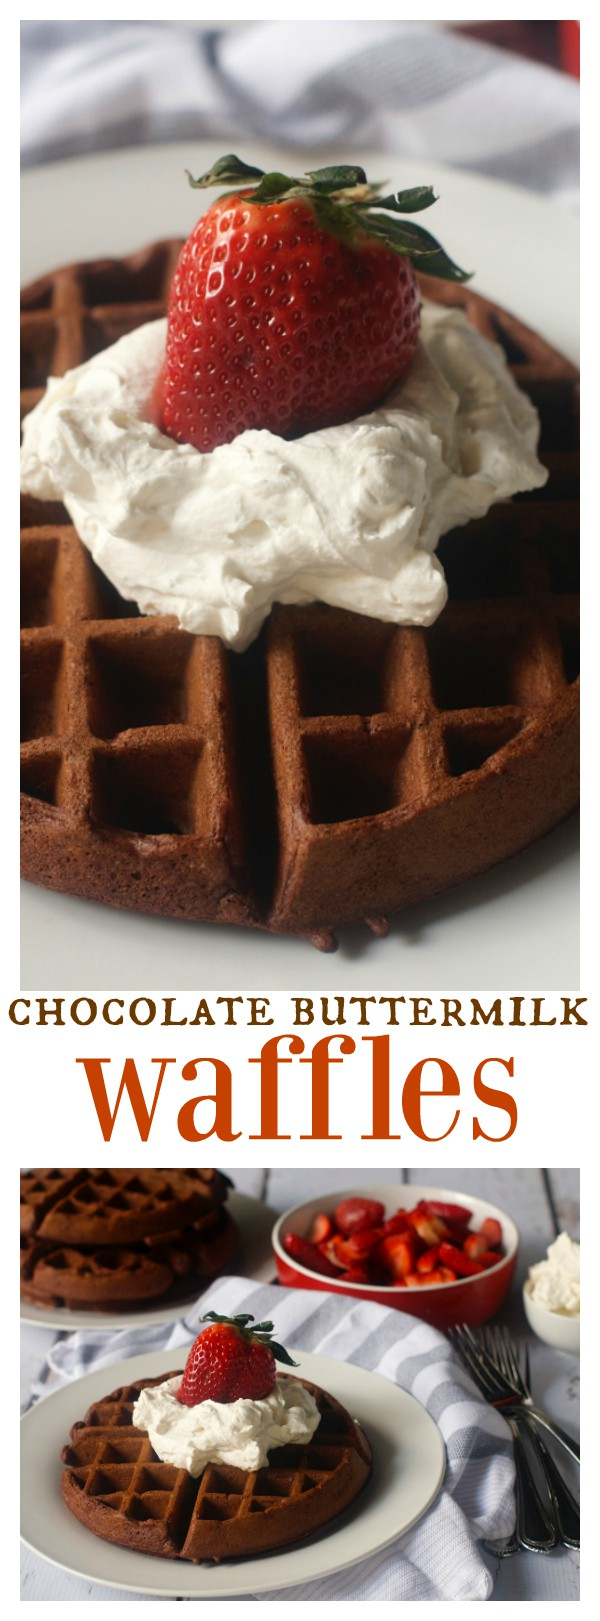 These Chocolate Buttermilk Waffles are delicious served for breakfast, brunch, lunch, or dinner. Top it off with fresh strawberries and whipped cream!